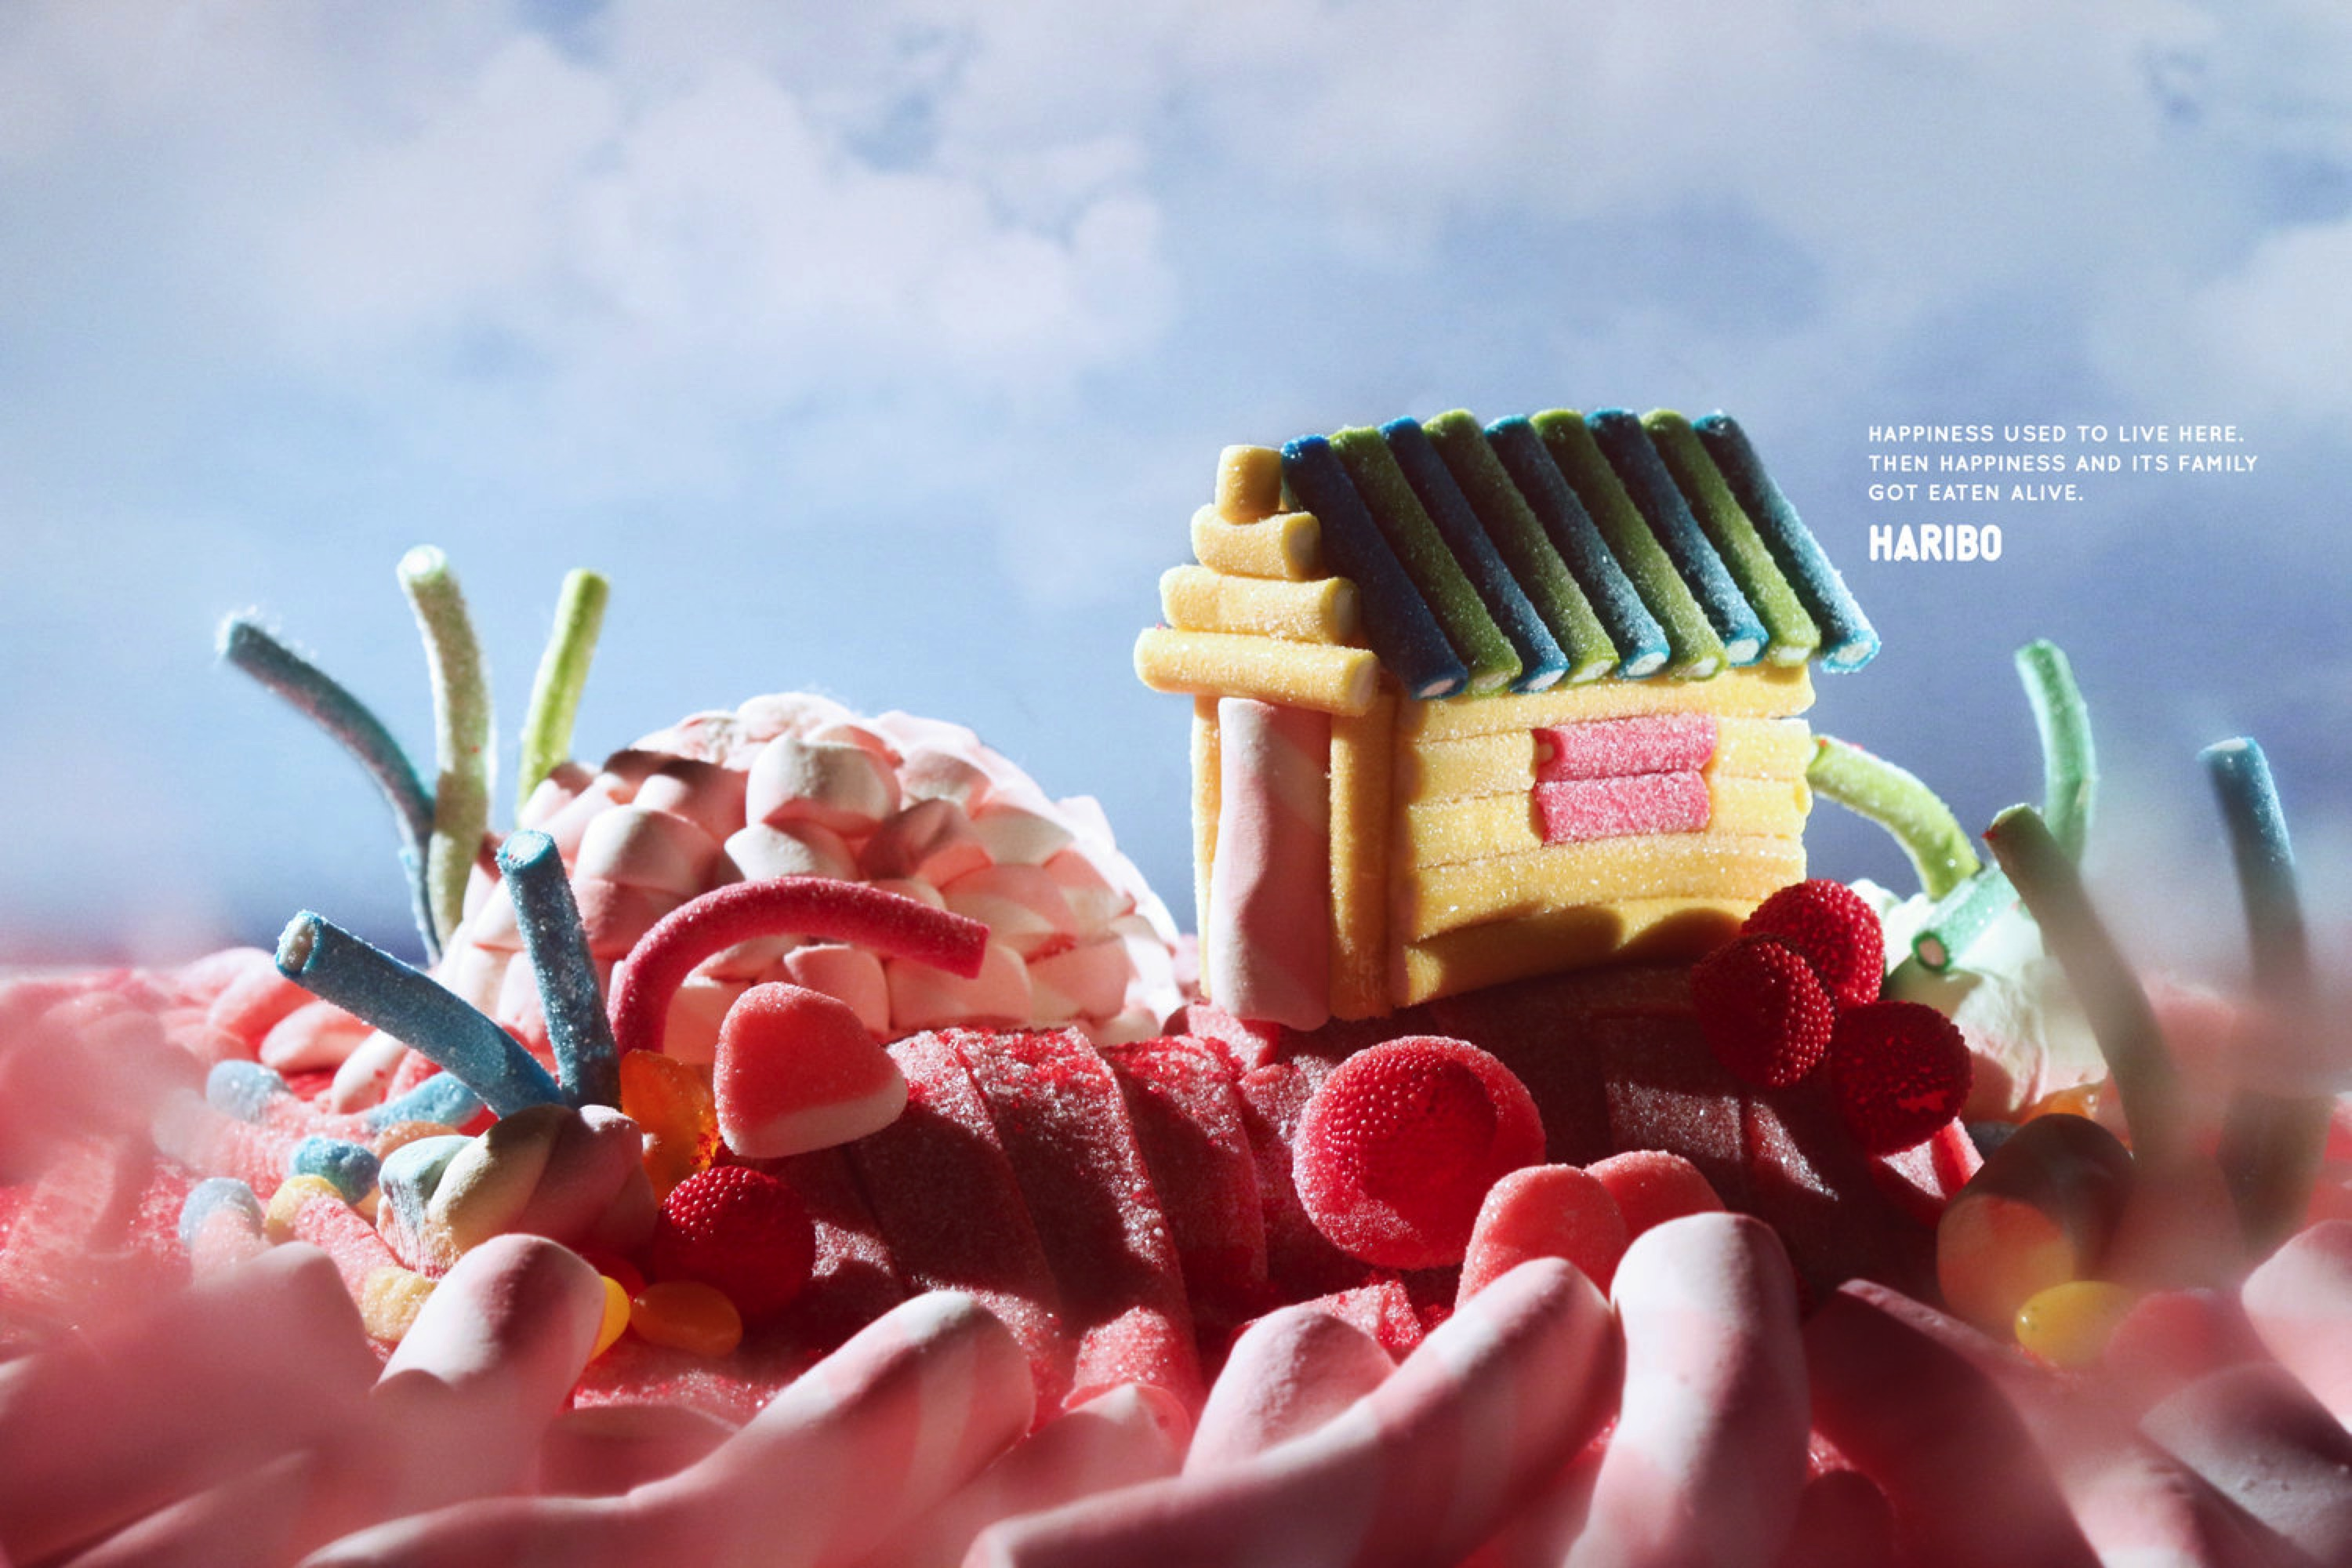 Haribo gummy bears are just one of many products that thomas - Haribo Outdoor Ad Happiness